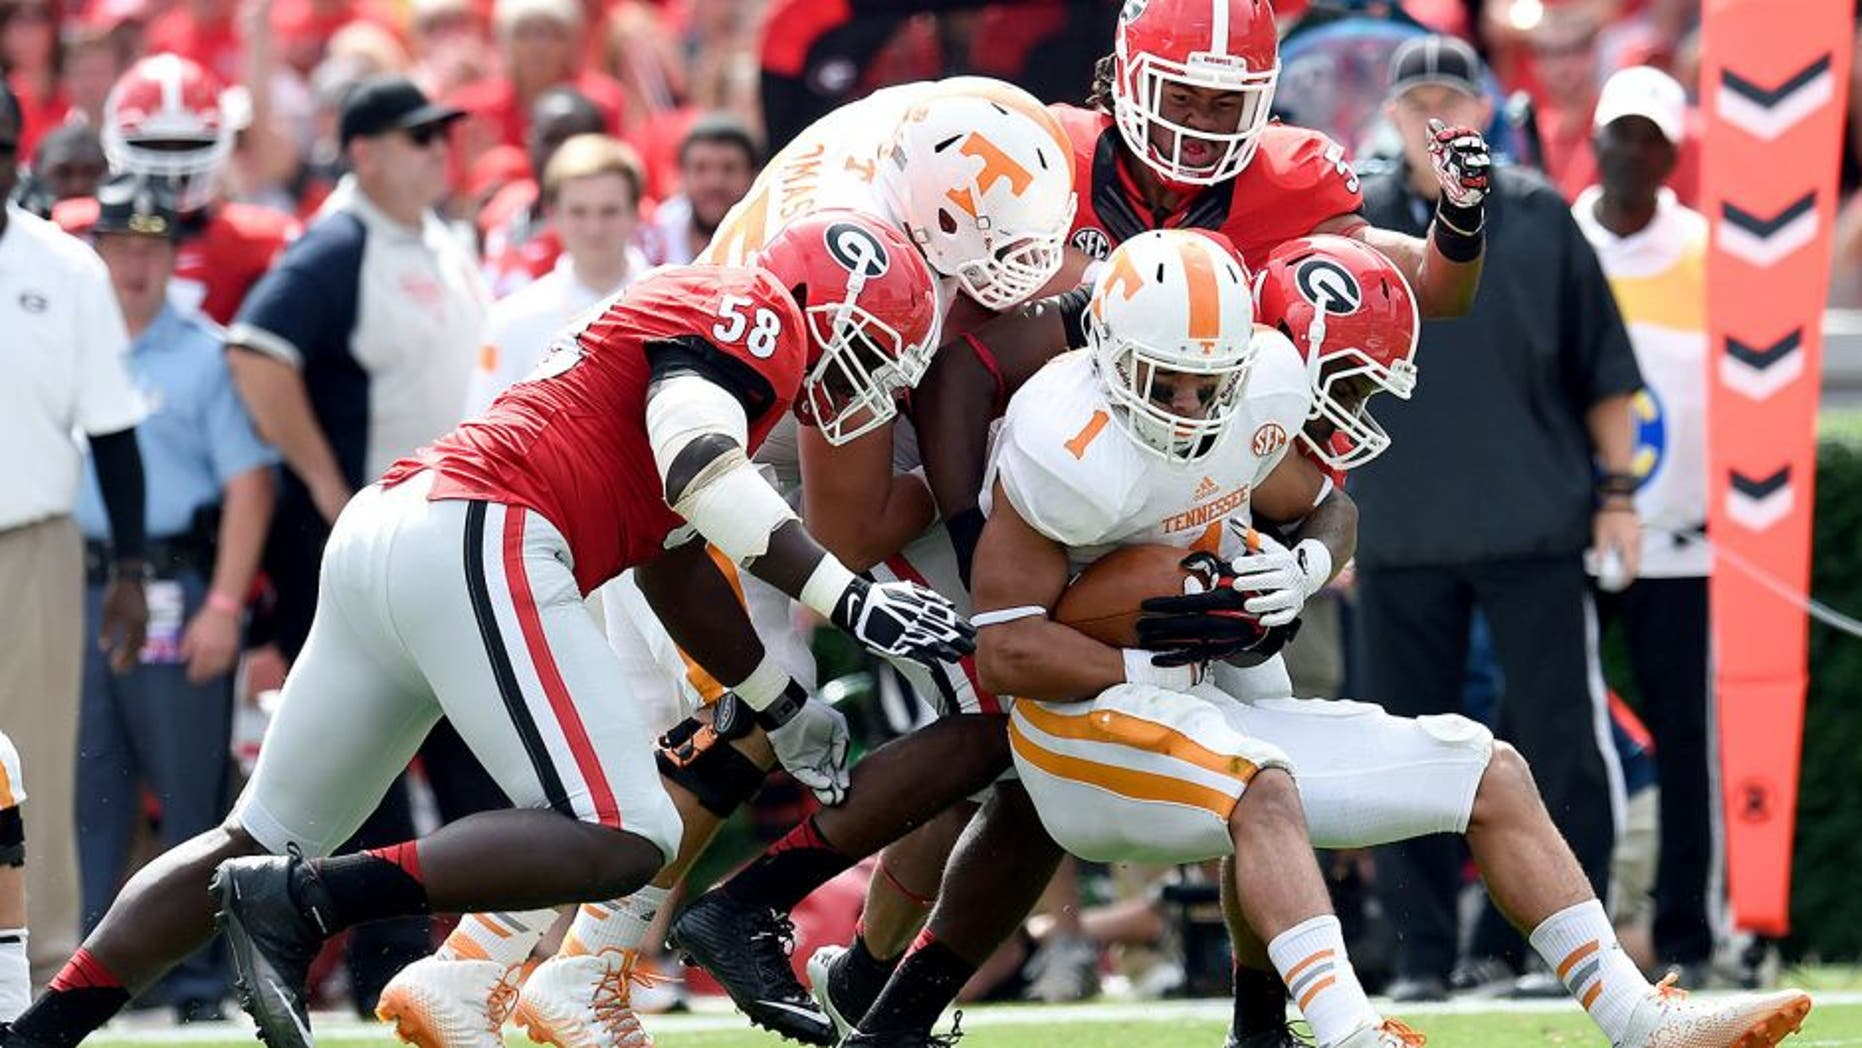 Sep 27, 2014; Athens, GA, USA; Tennessee Volunteers running back Jalen Hurd (1) is tackled by Georgia Bulldogs defensive end Sterling Bailey (58) linebacker Ramik Wilson (51) and linebacker Jordan Jenkins (59) during the first quarter at Sanford Stadium. Mandatory Credit: Dale Zanine-USA TODAY Sports